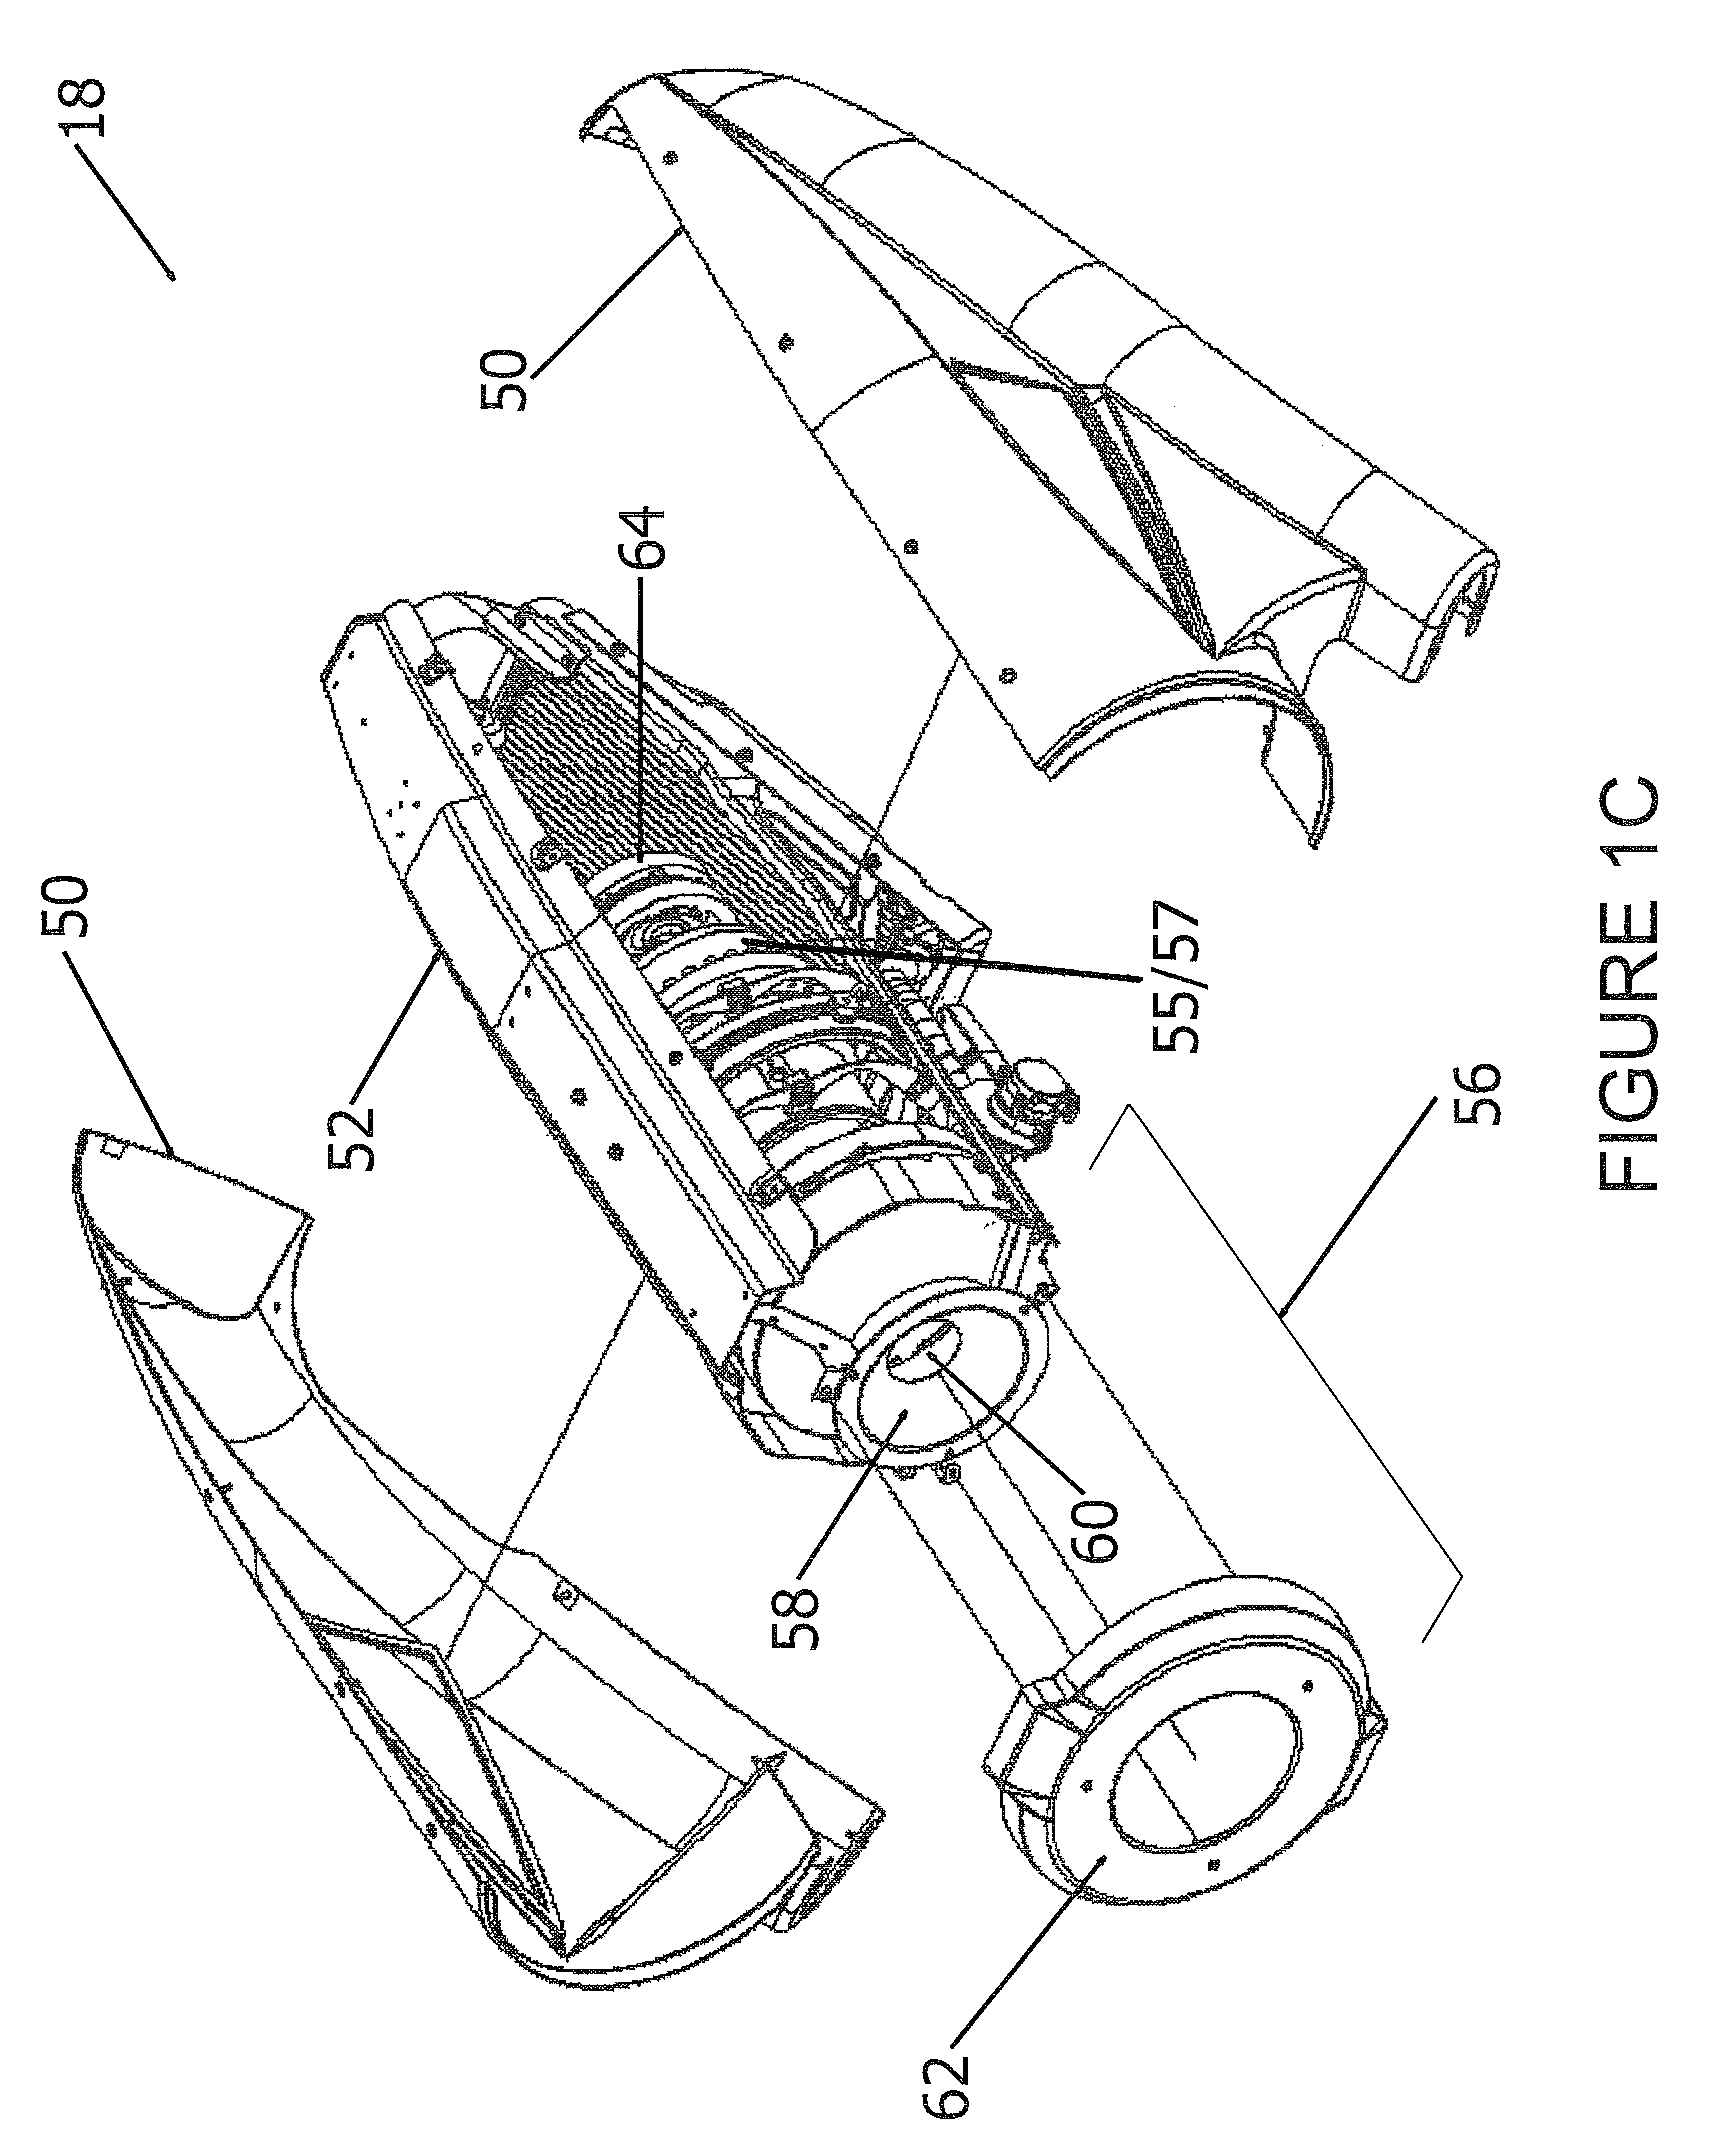 small resolution of stirling engine systems apparatus and methods us 8151568 b2 patent drawing